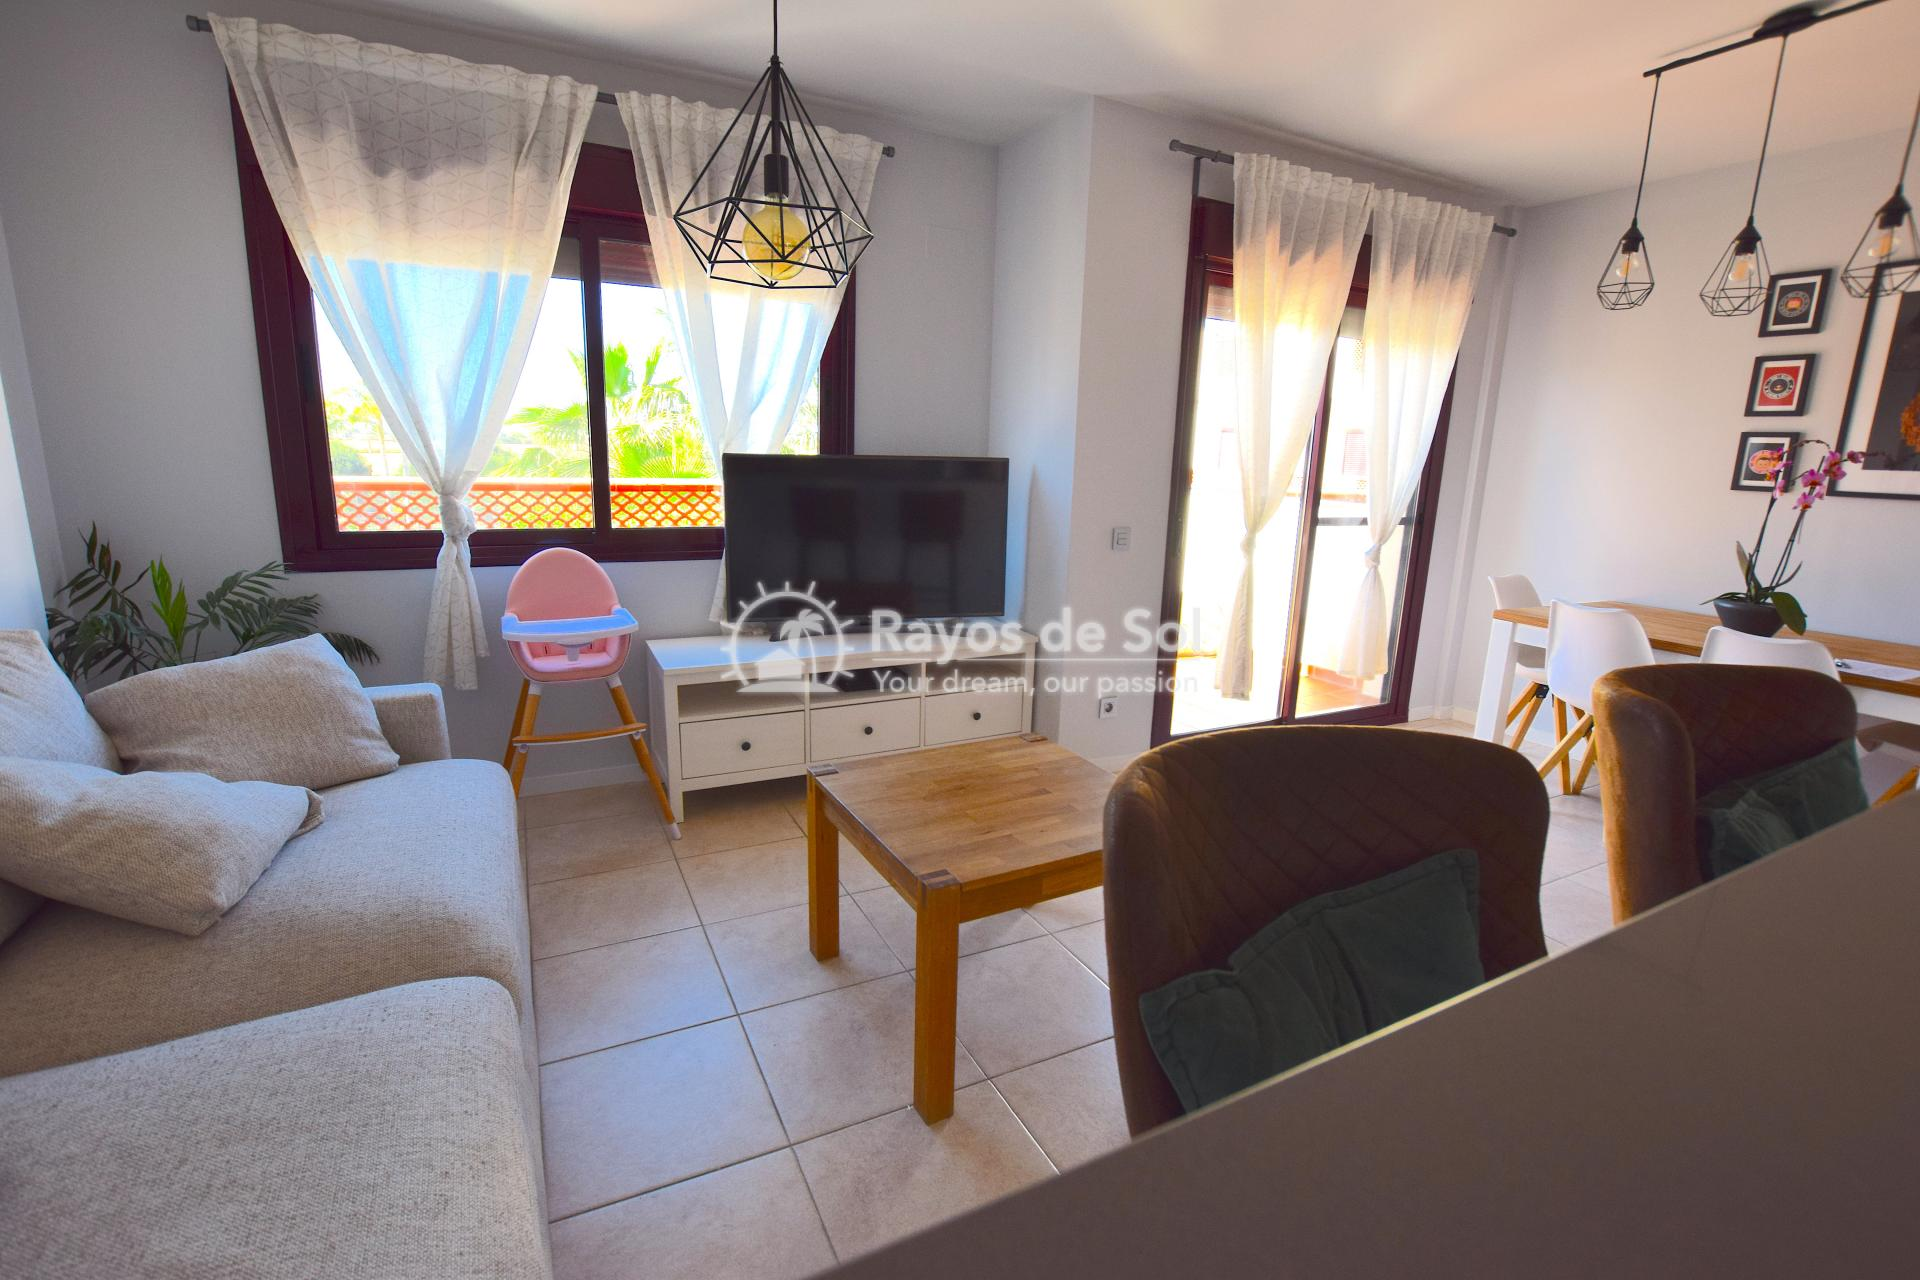 Penthouse with stunning views  in Los Alcazares, Costa Cálida (LARE0003) - 5